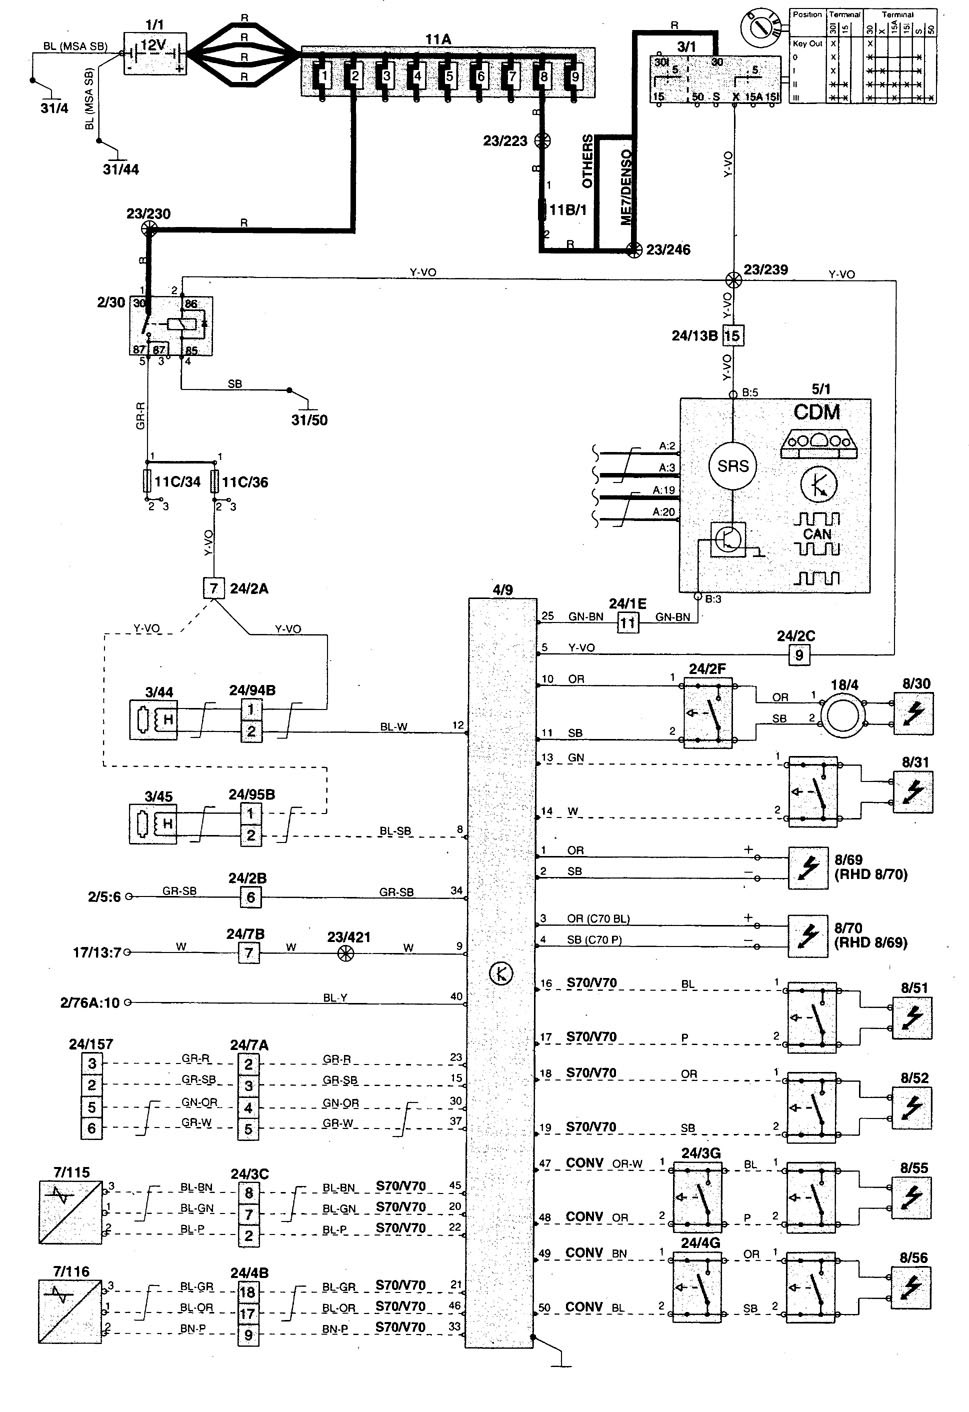 hight resolution of 1999 volvo s70 wiring diagram 29 wiring diagram images volvo s80 wiring diagram 1999 volvo